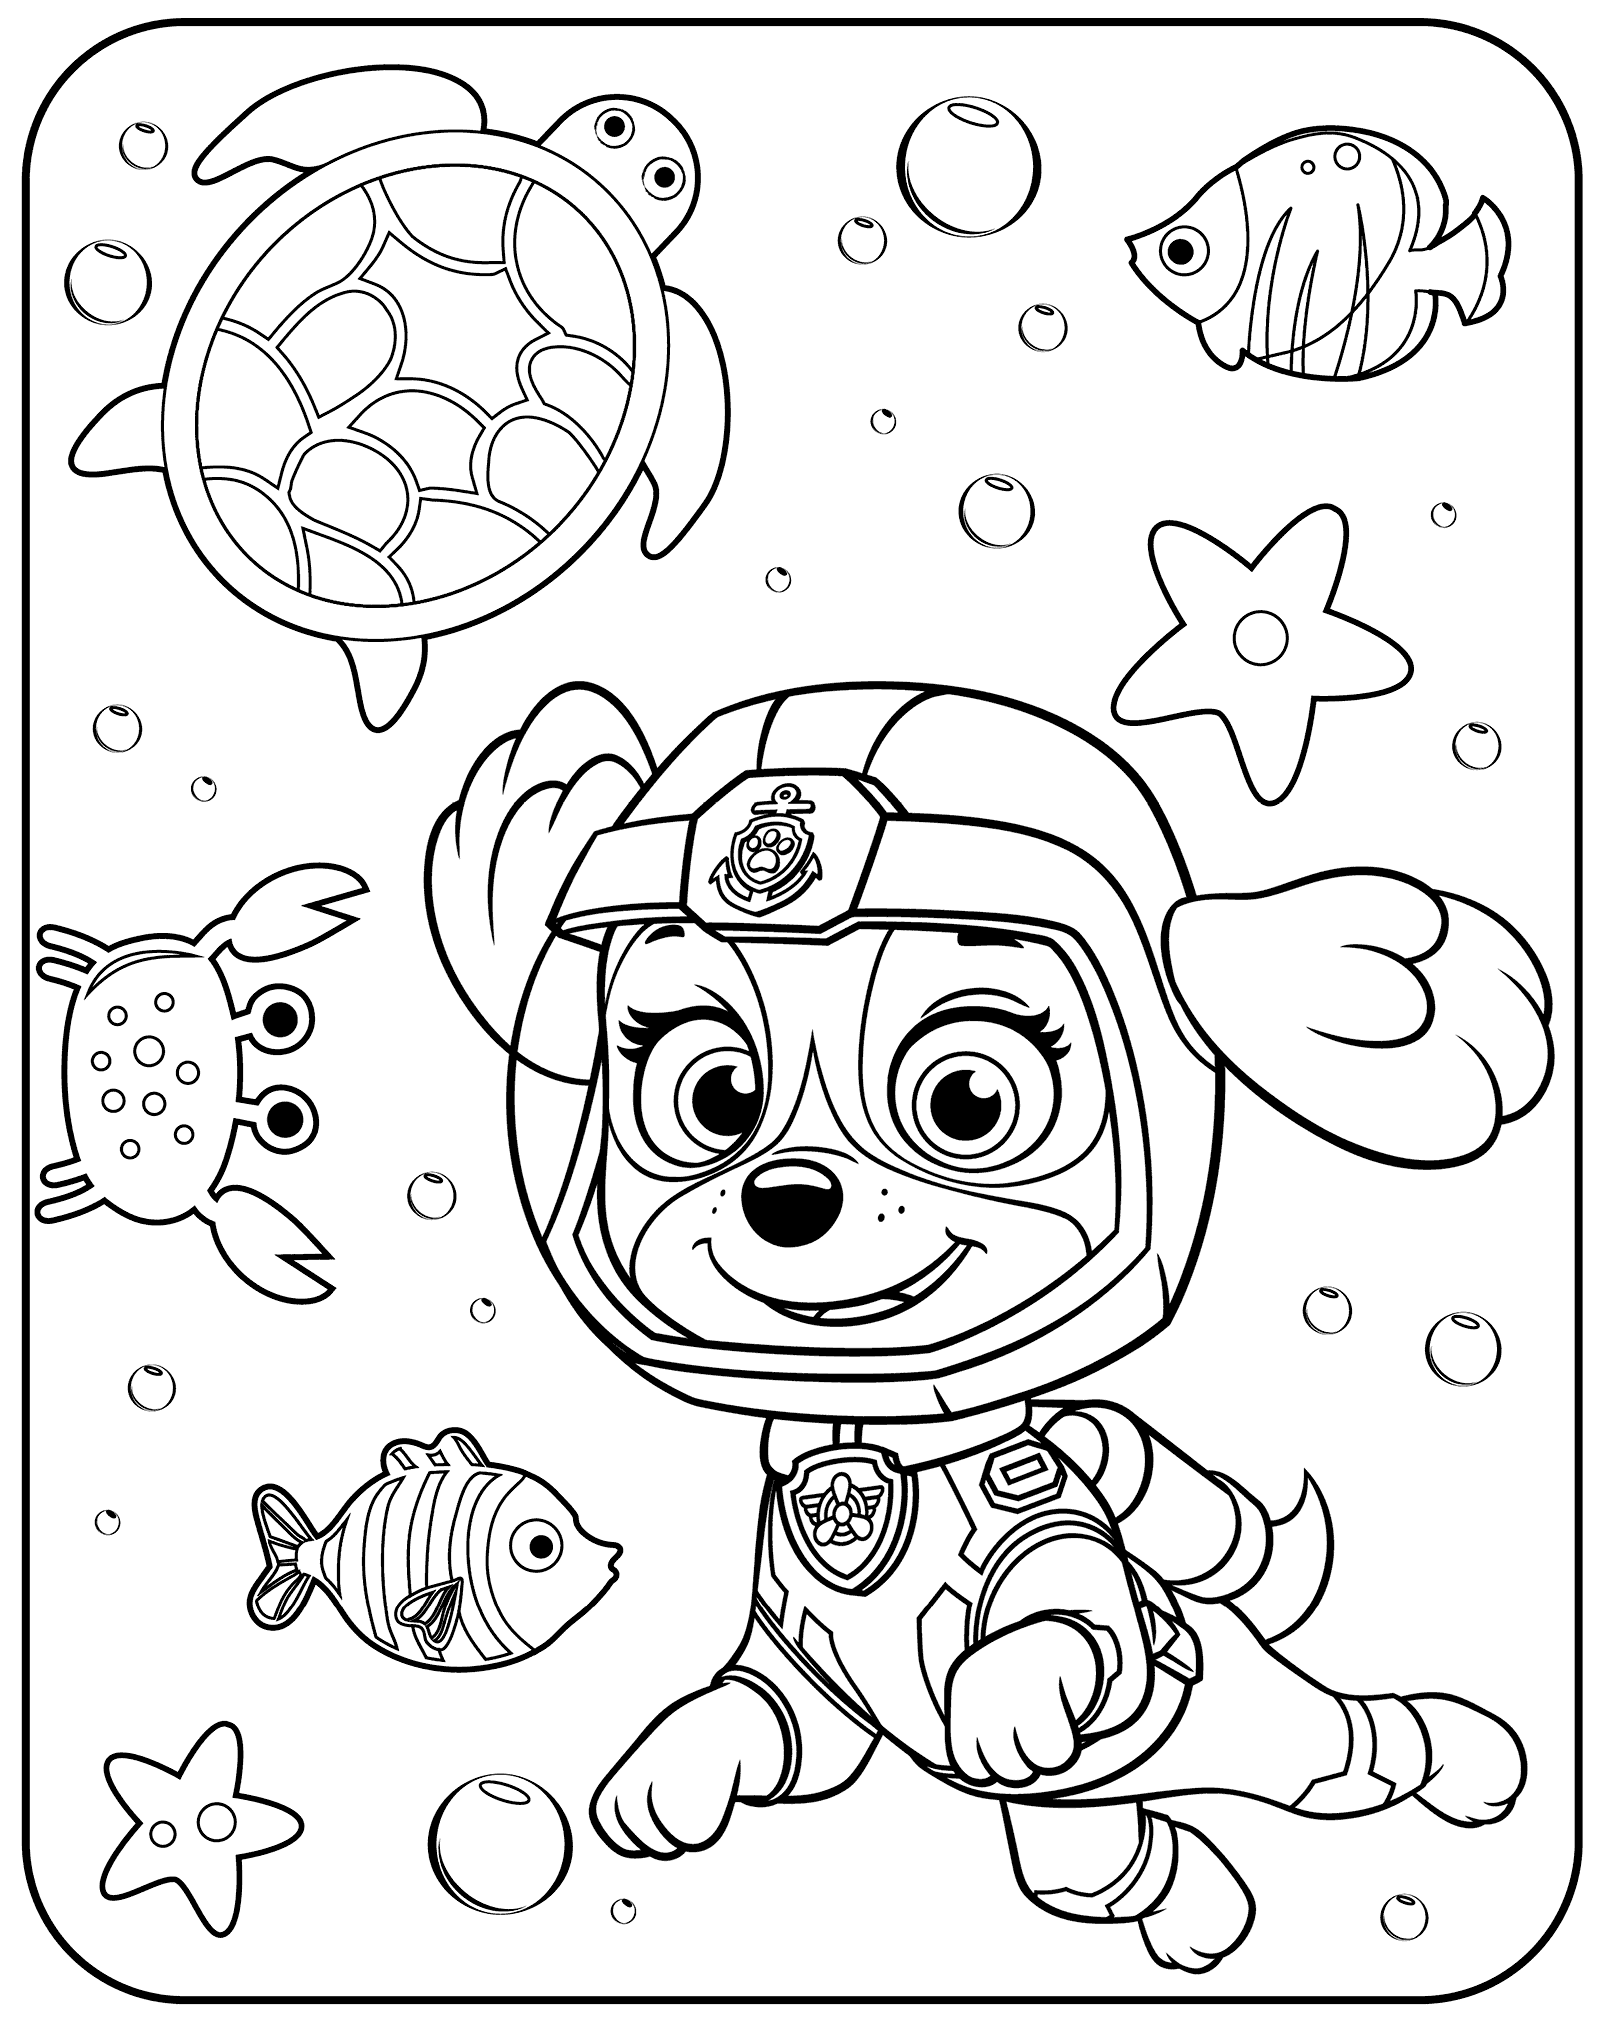 Skye Underwater Paw Patrol Coloring Page Paw Patrol Coloring Pages Paw Patrol Coloring Birthday Coloring Pages